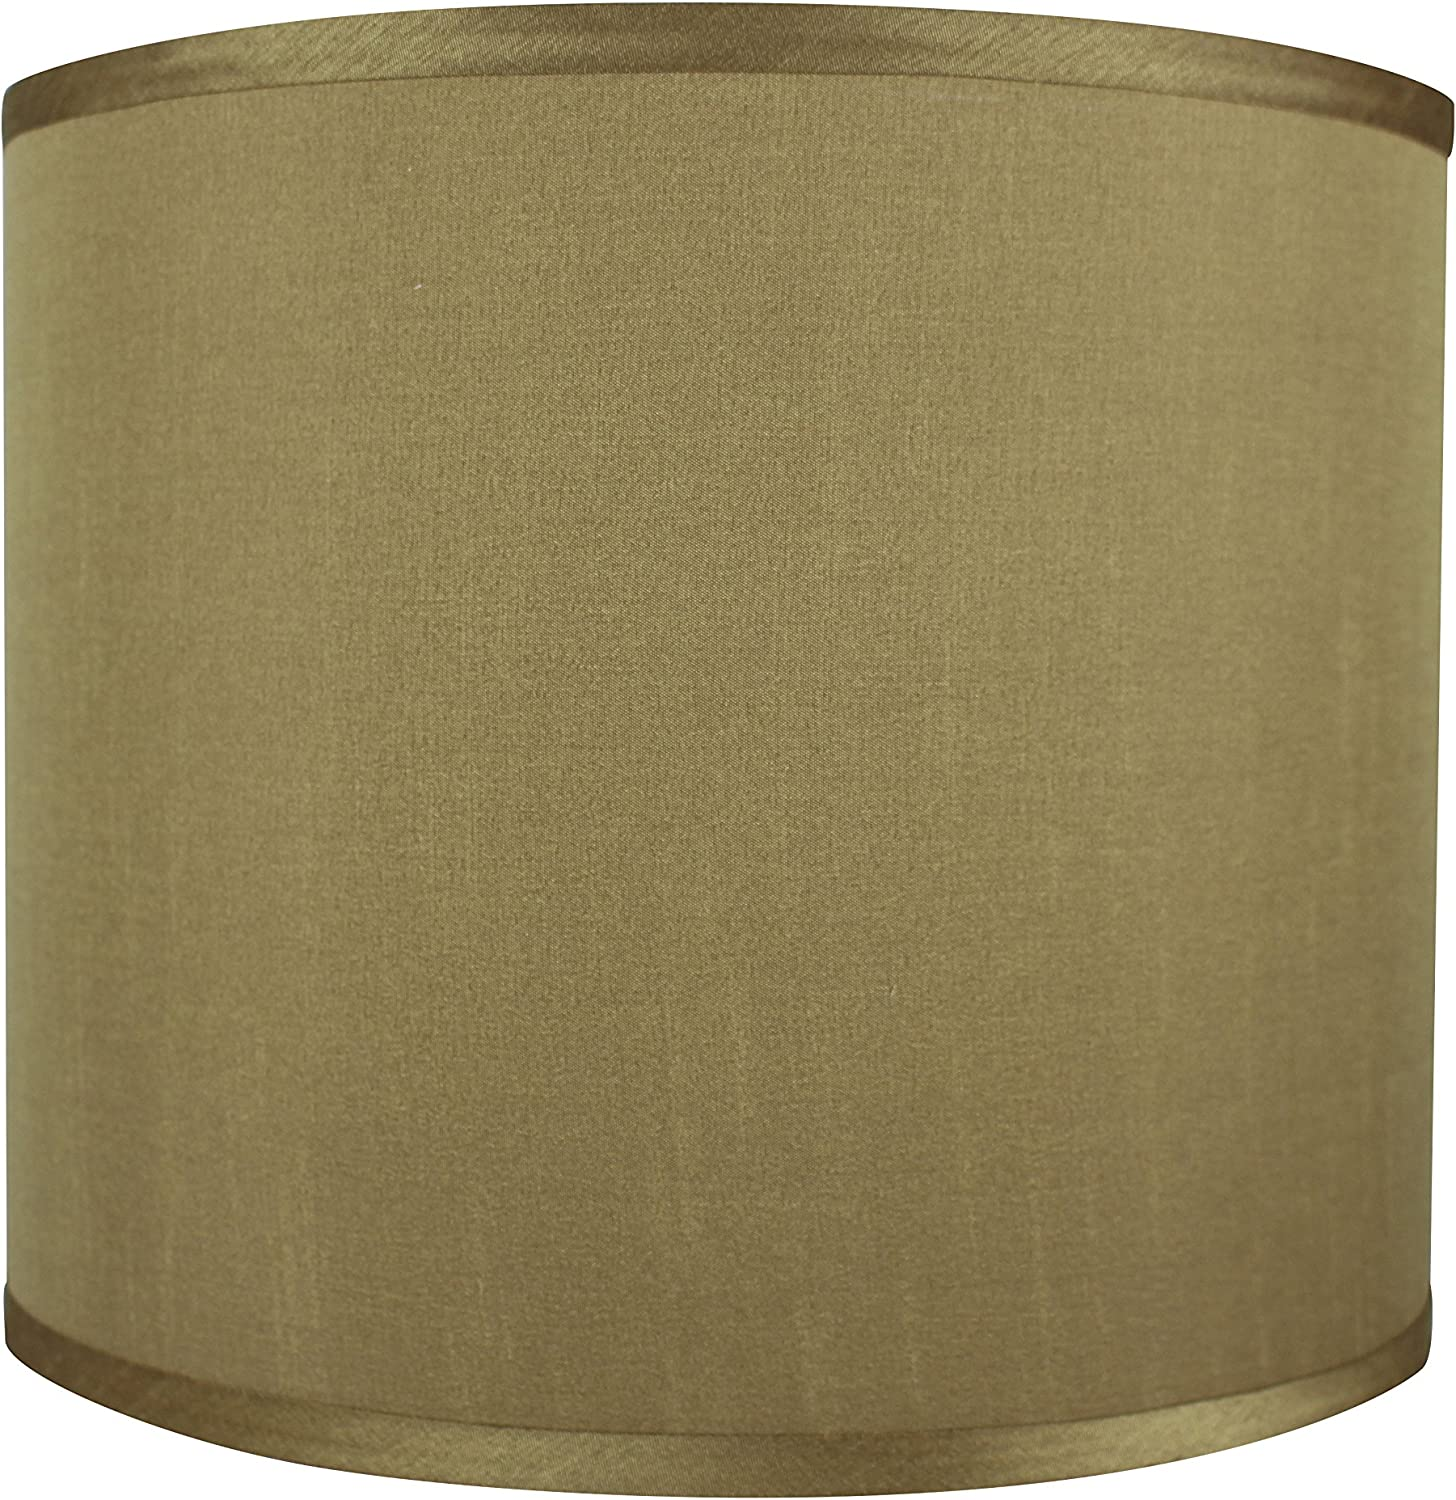 Urbanest Faux Silk Drum Lampshade 12 Inch By 12 Inch By 10 Inch Gold Spider Fitter